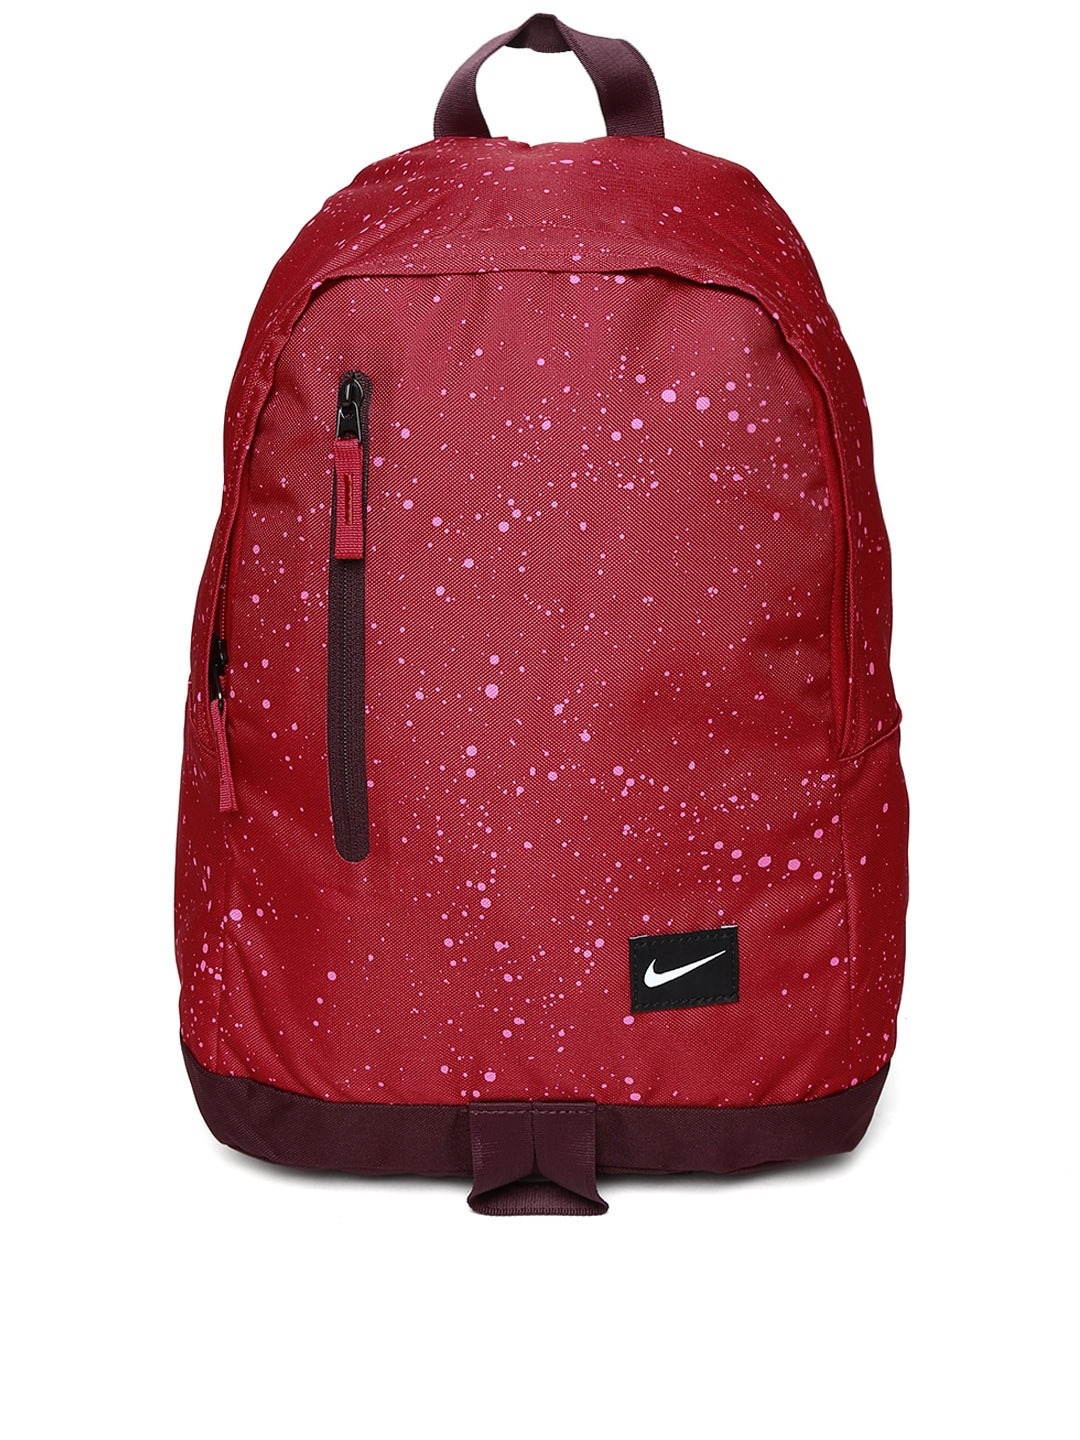 Fastrack bags for school - Nike Backpacks Ba4856 613 Price In India